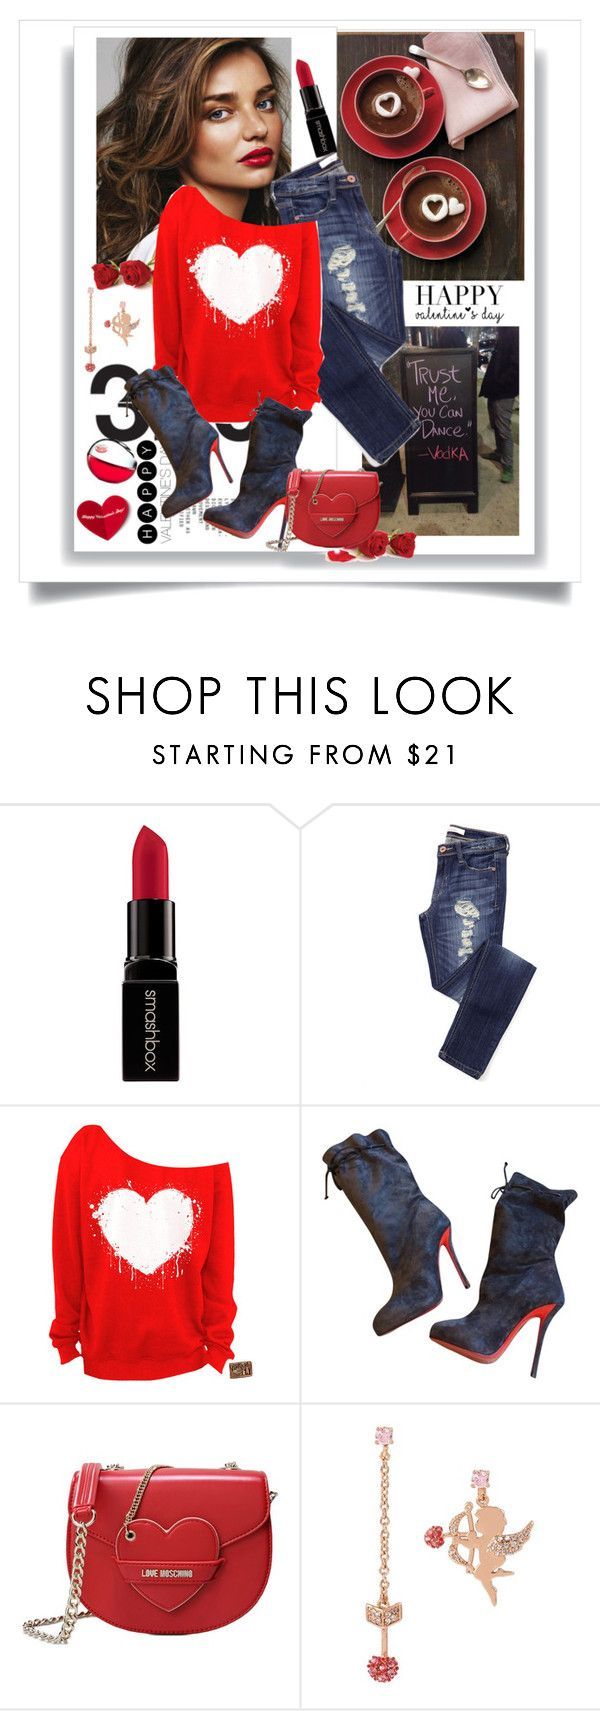 """Valentine's Date.................."" by style-stories ❤ liked on Polyvore featuring Kerr®, Smashbox, Christian Louboutin, Love Moschino, DKNY and Betsey Johnson"